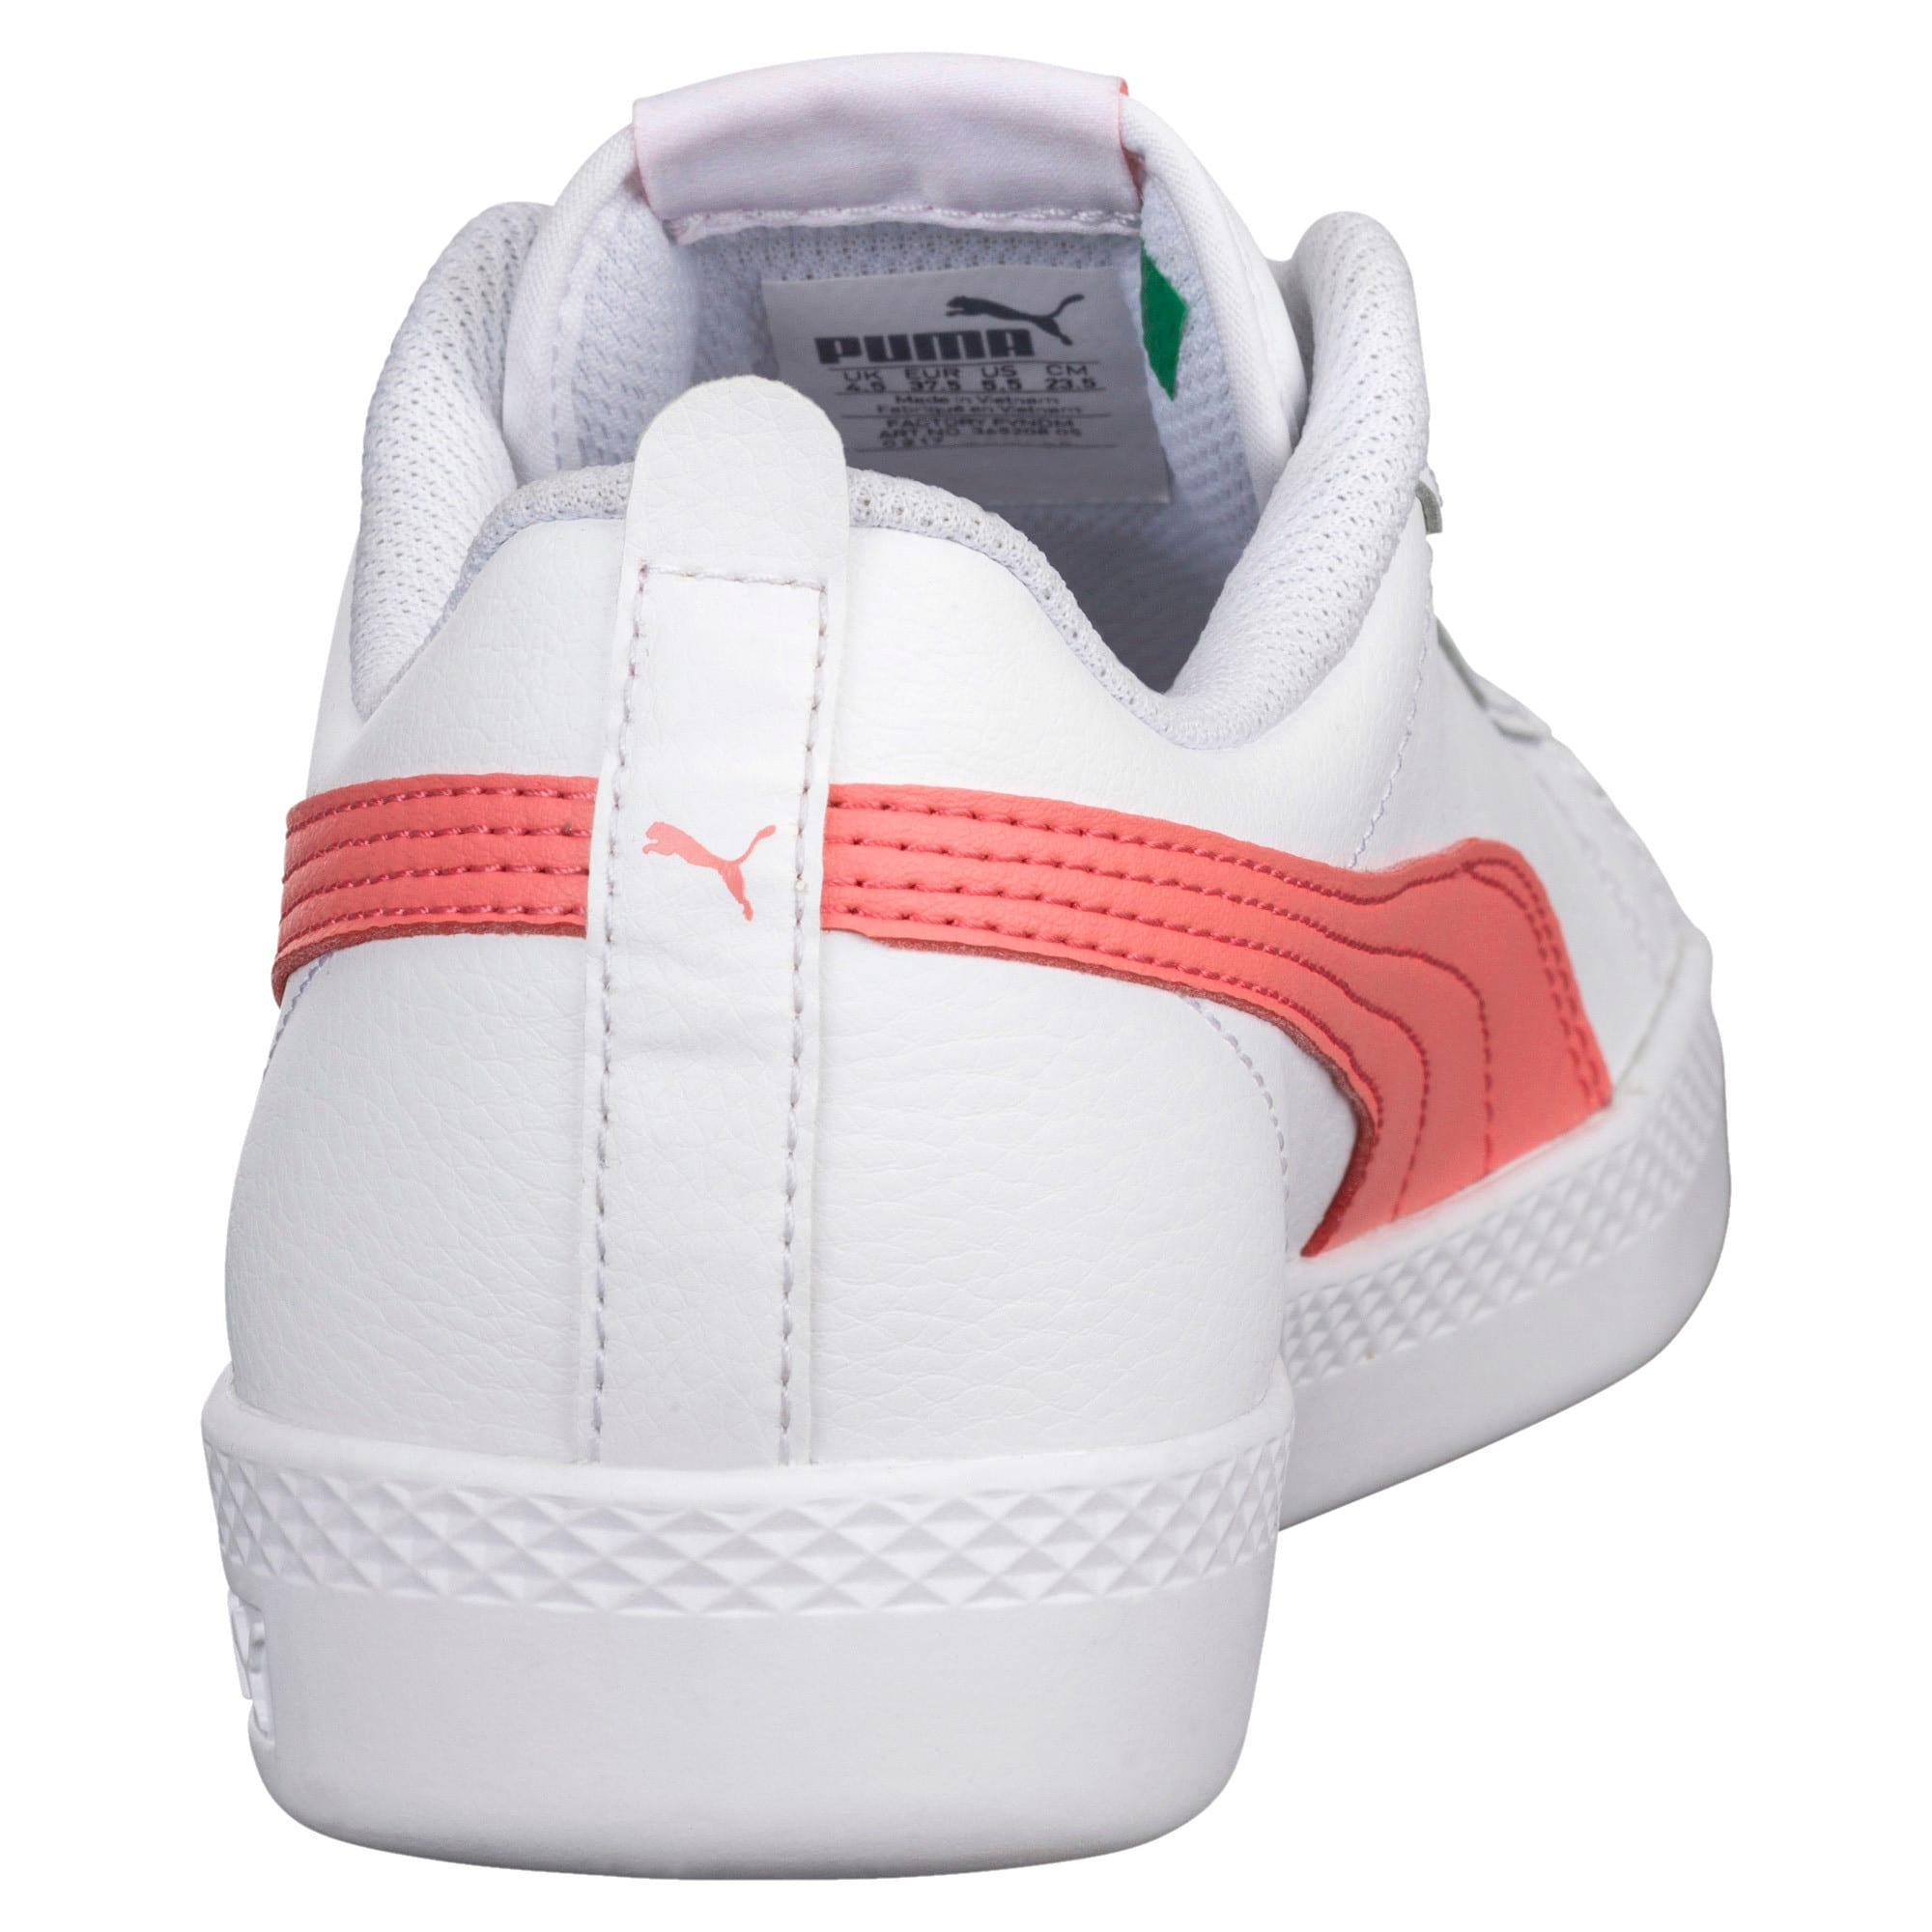 Thumbnail 3 of Smash v2 Leather Women's Trainers, Puma White-Shell Pink, medium-IND